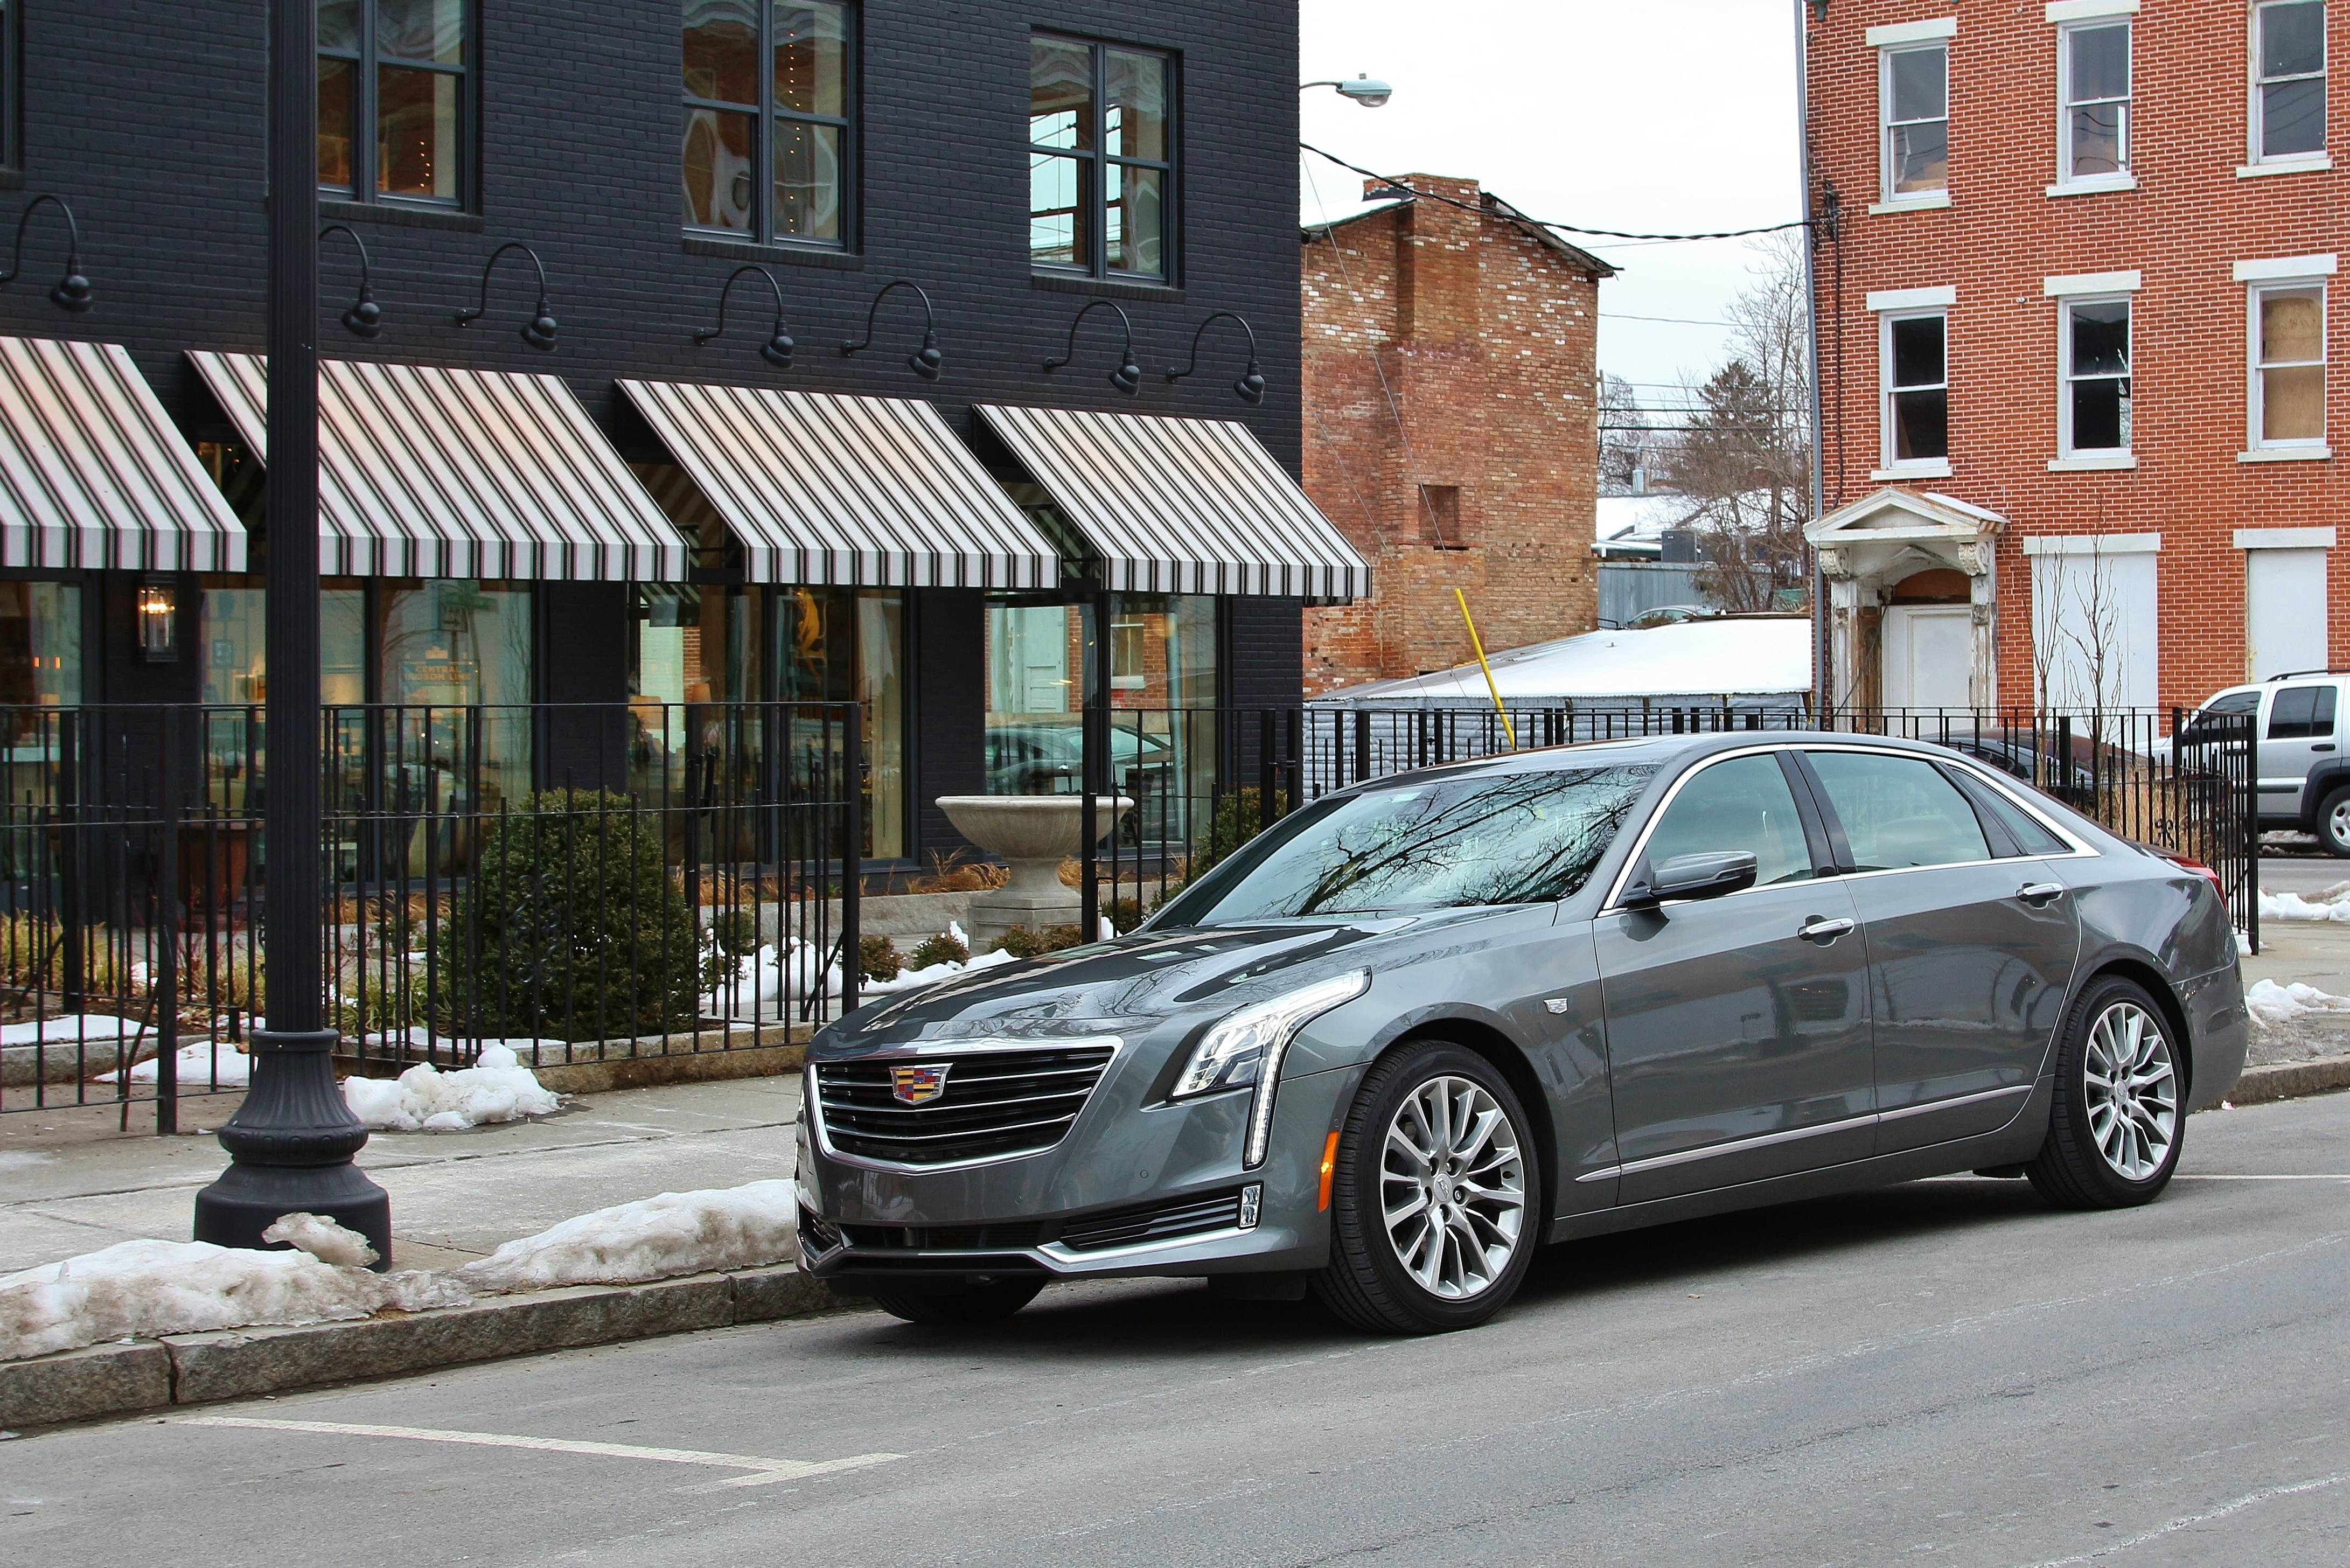 media cadillac detail xts pages us galleries vehicles states photos msrp content vsport united pressroom en